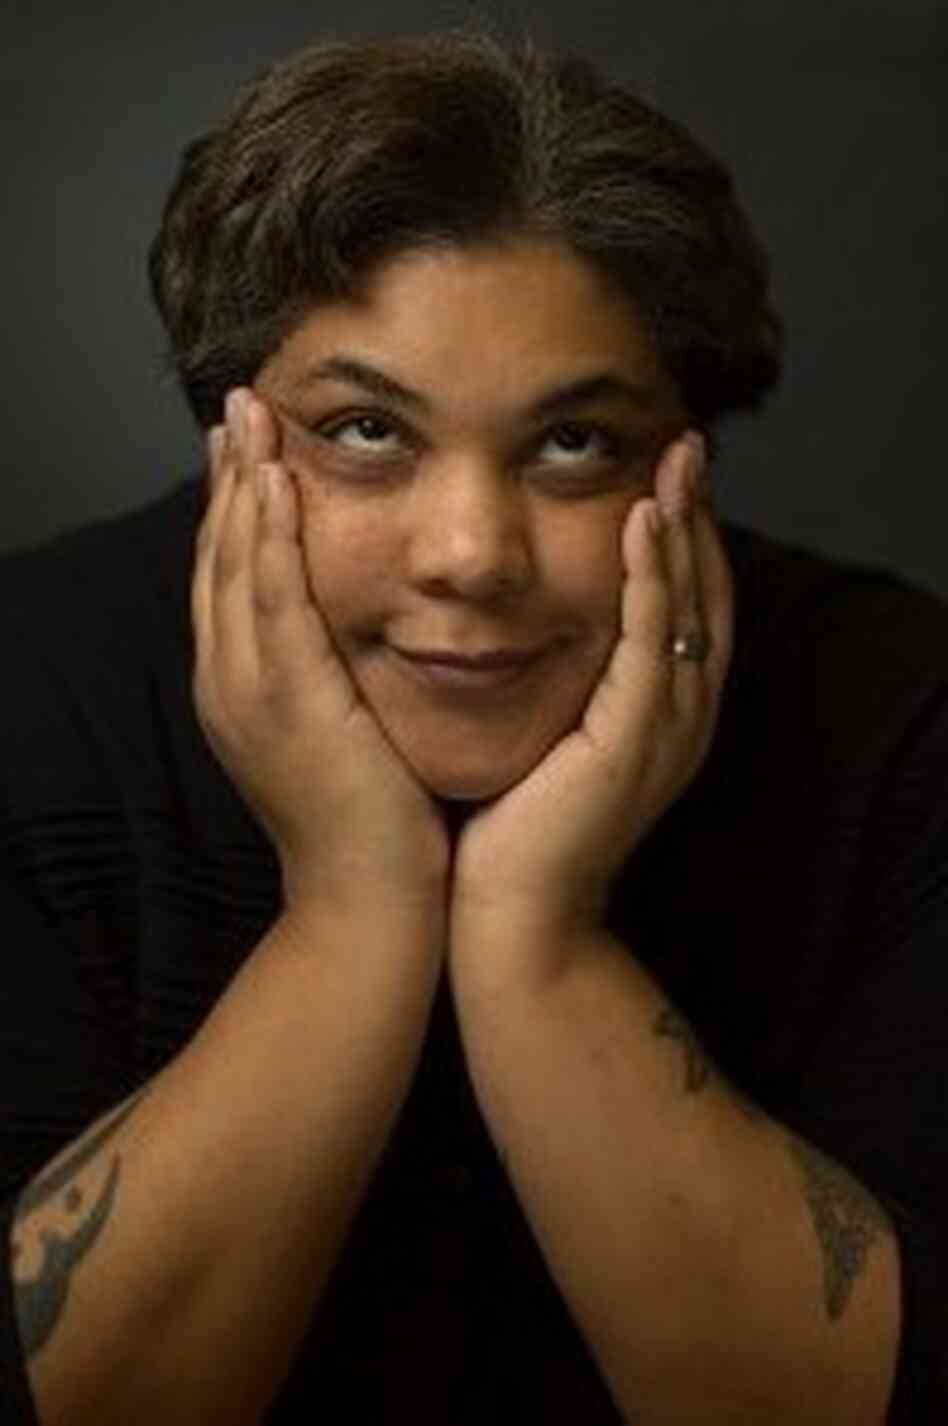 Roxane Gay's new novel is An Untamed State. Her essay collection Bad Feminist will be released later this year.